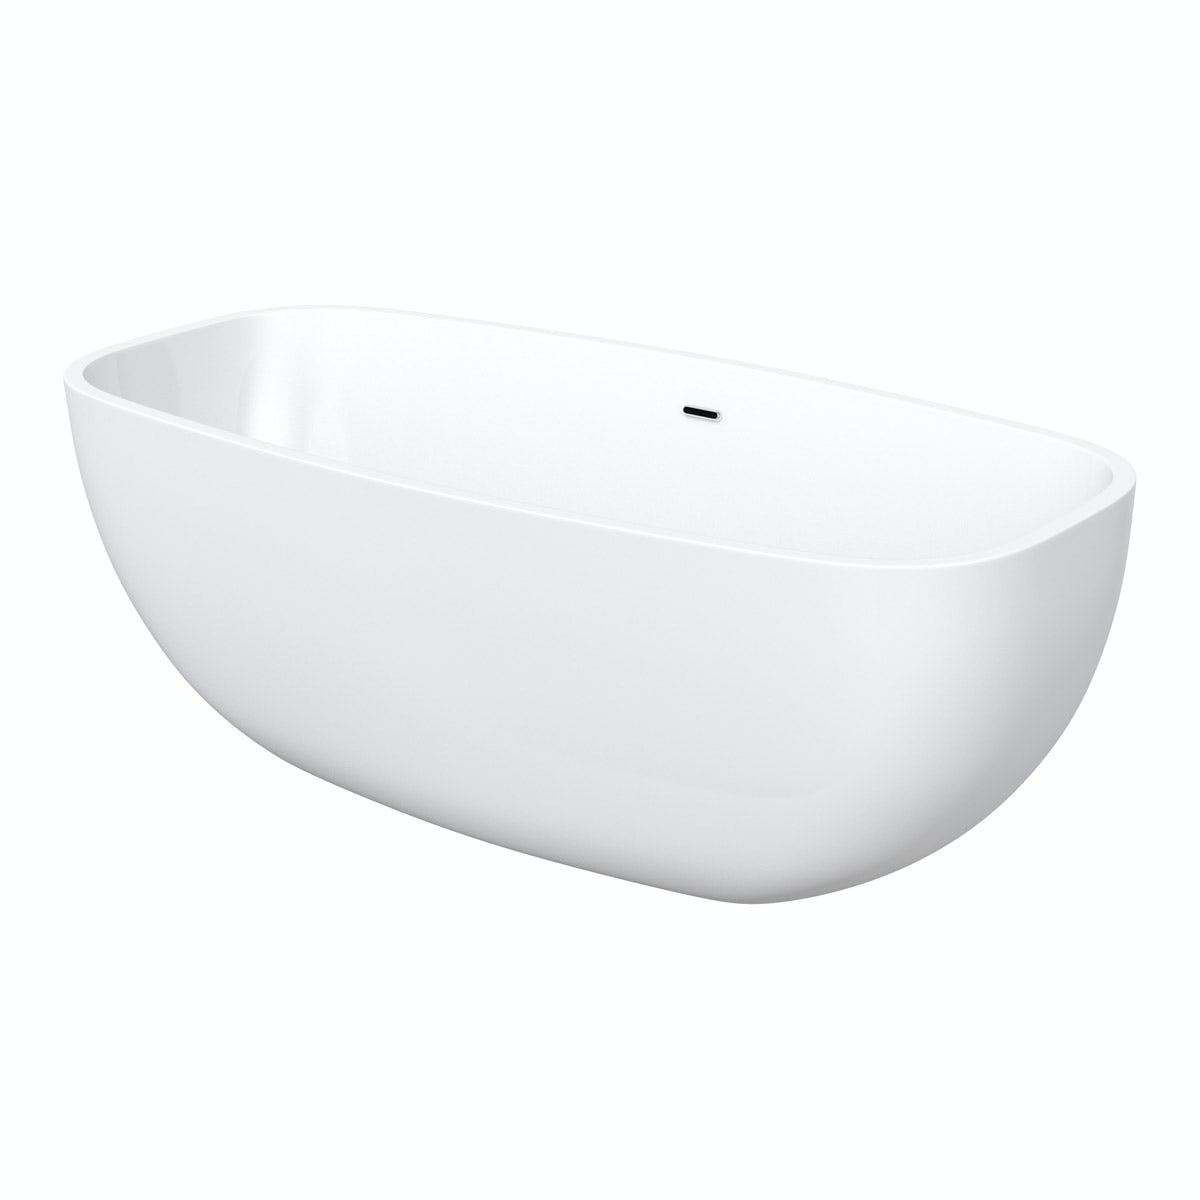 Mode ellis freestanding bath 1800 x 870 for Bath 1800